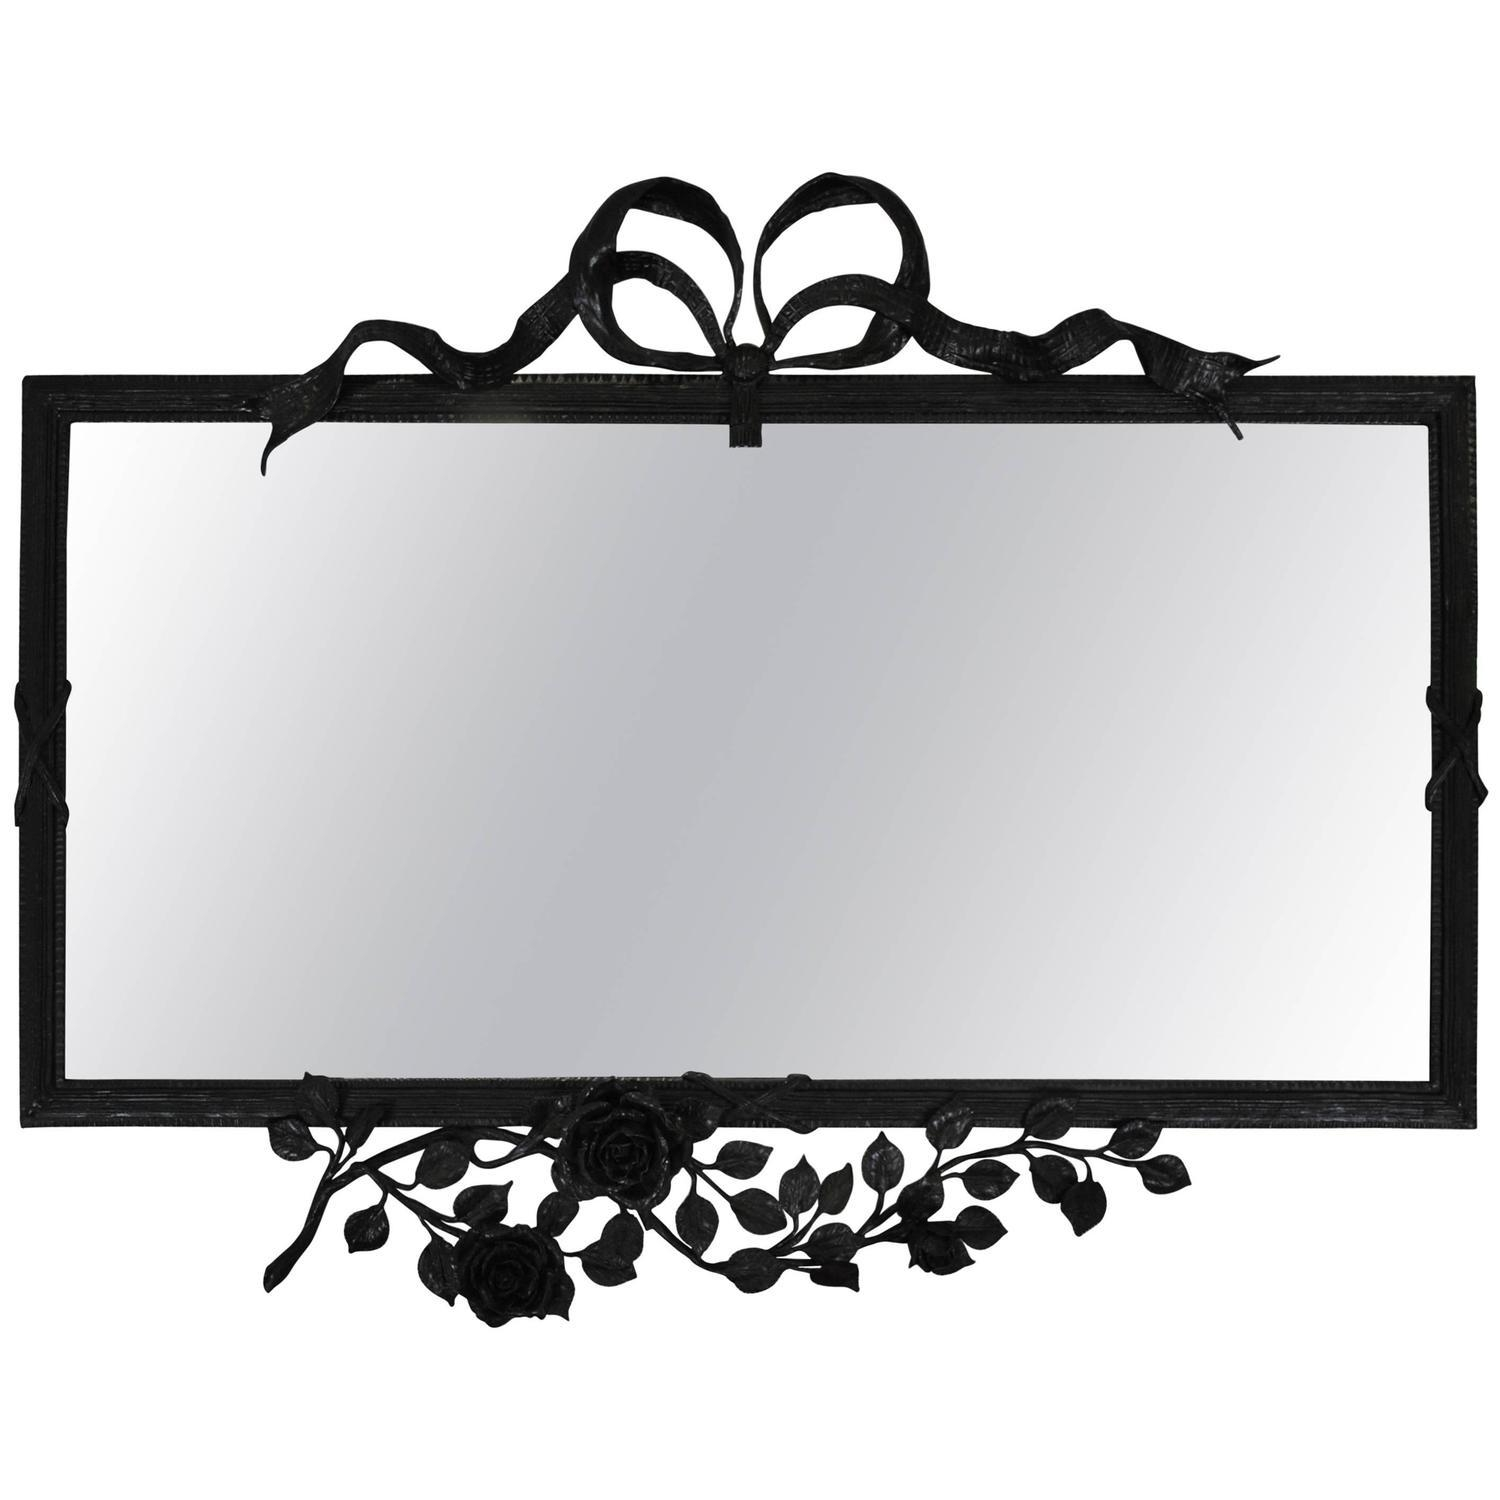 Wrought Iron Mirrors – 91 For Sale At 1Stdibs With Regard To Black Wrought Iron Mirrors (View 6 of 20)